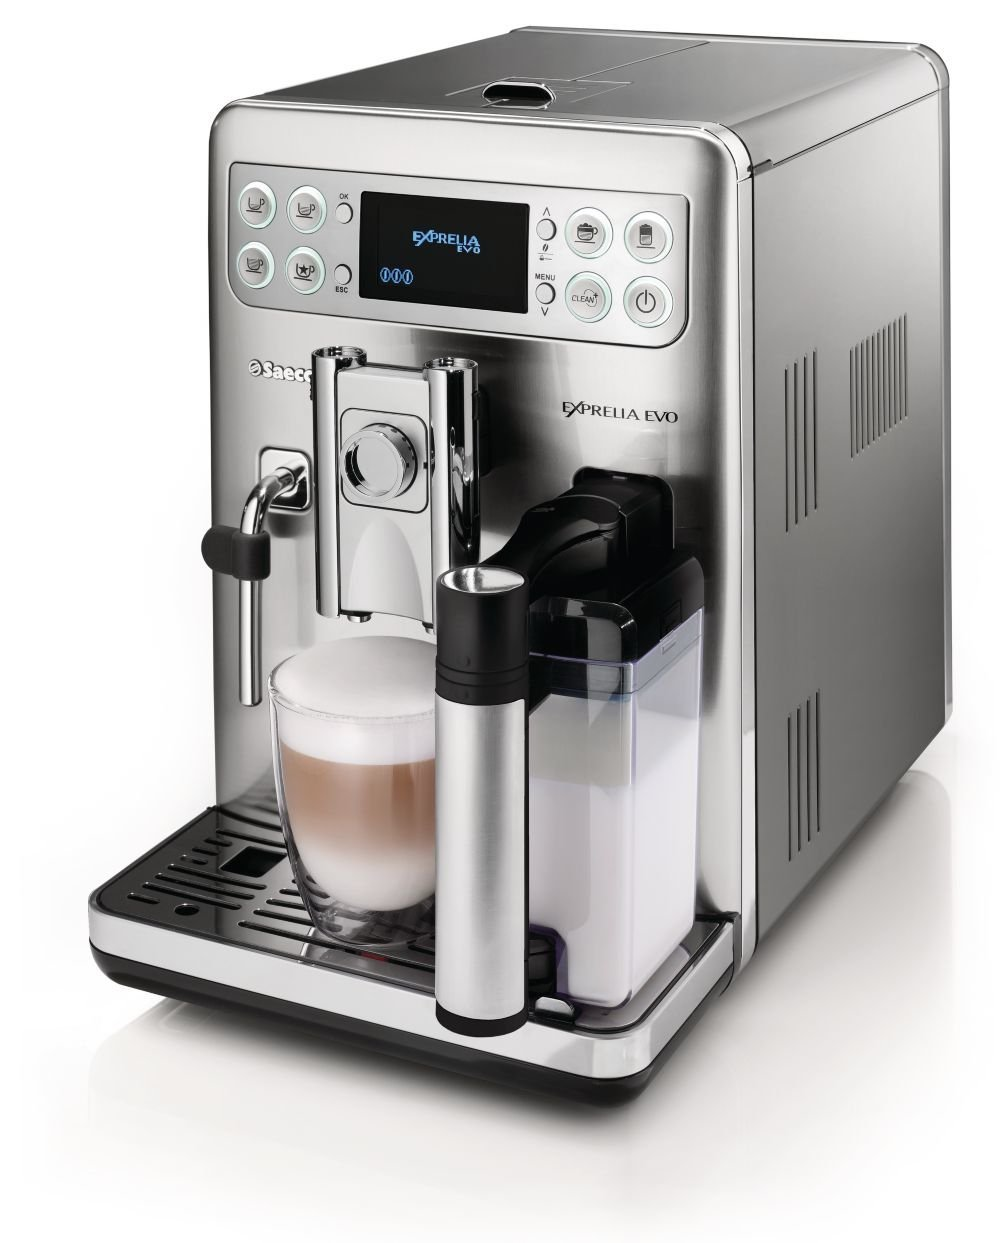 SAECO HD8857/47 Philips Exprellia EVO Fully Automatic Espresso Machine  (View on Amazon)